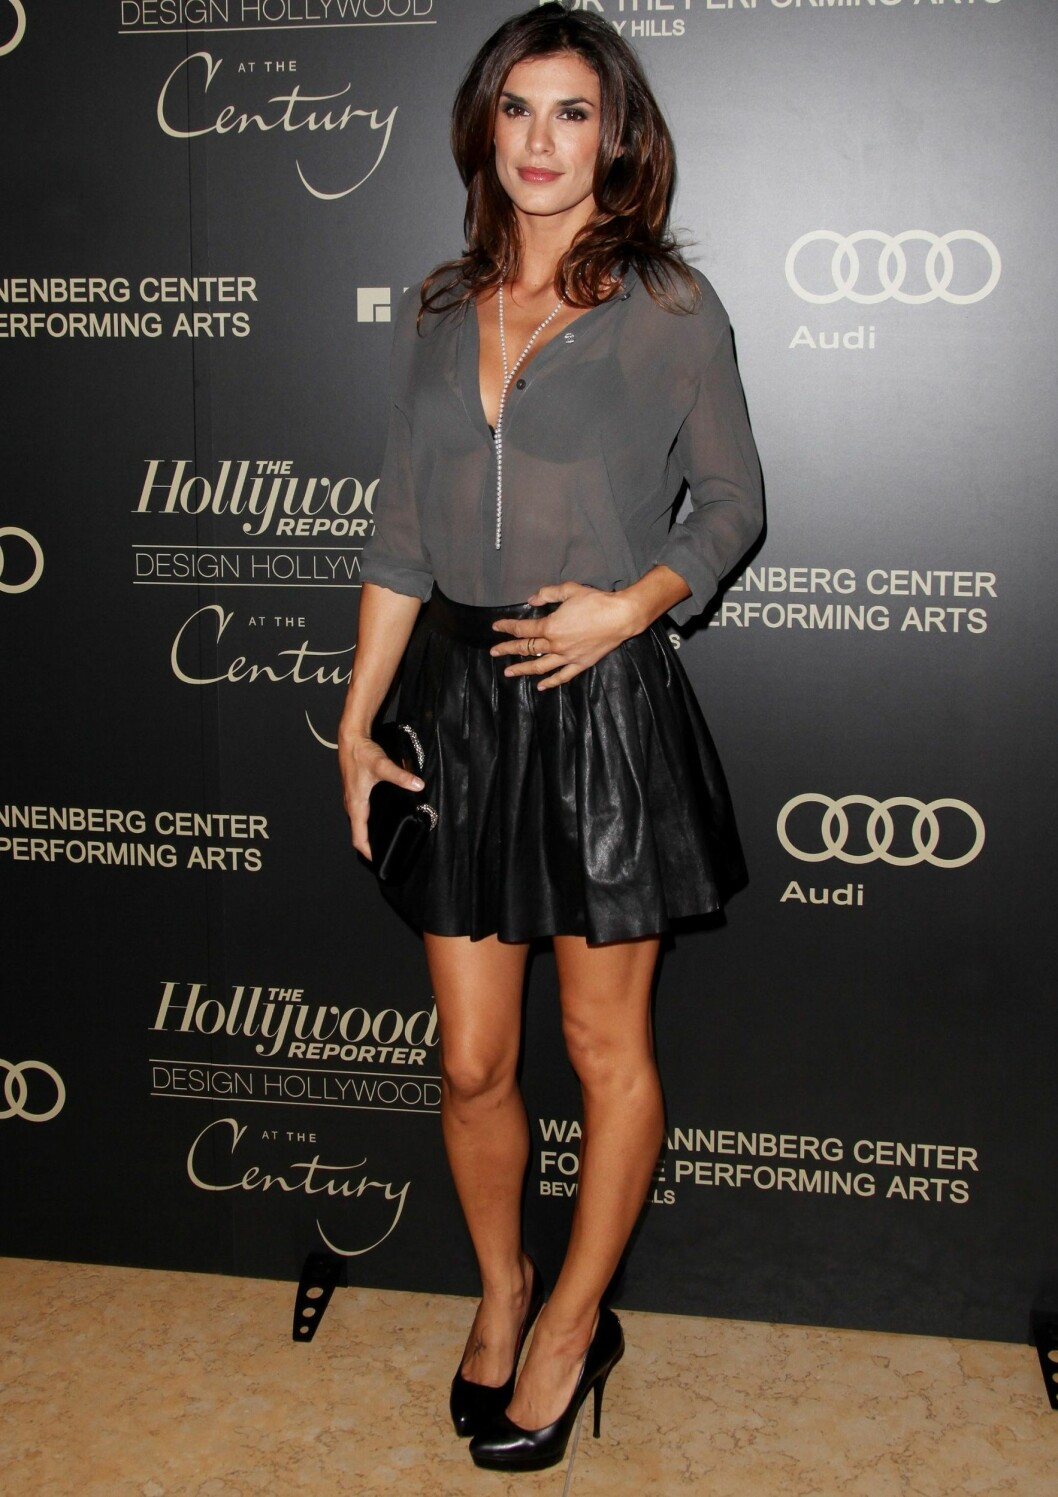 Elisabetta Canalis Foto: All Over Press